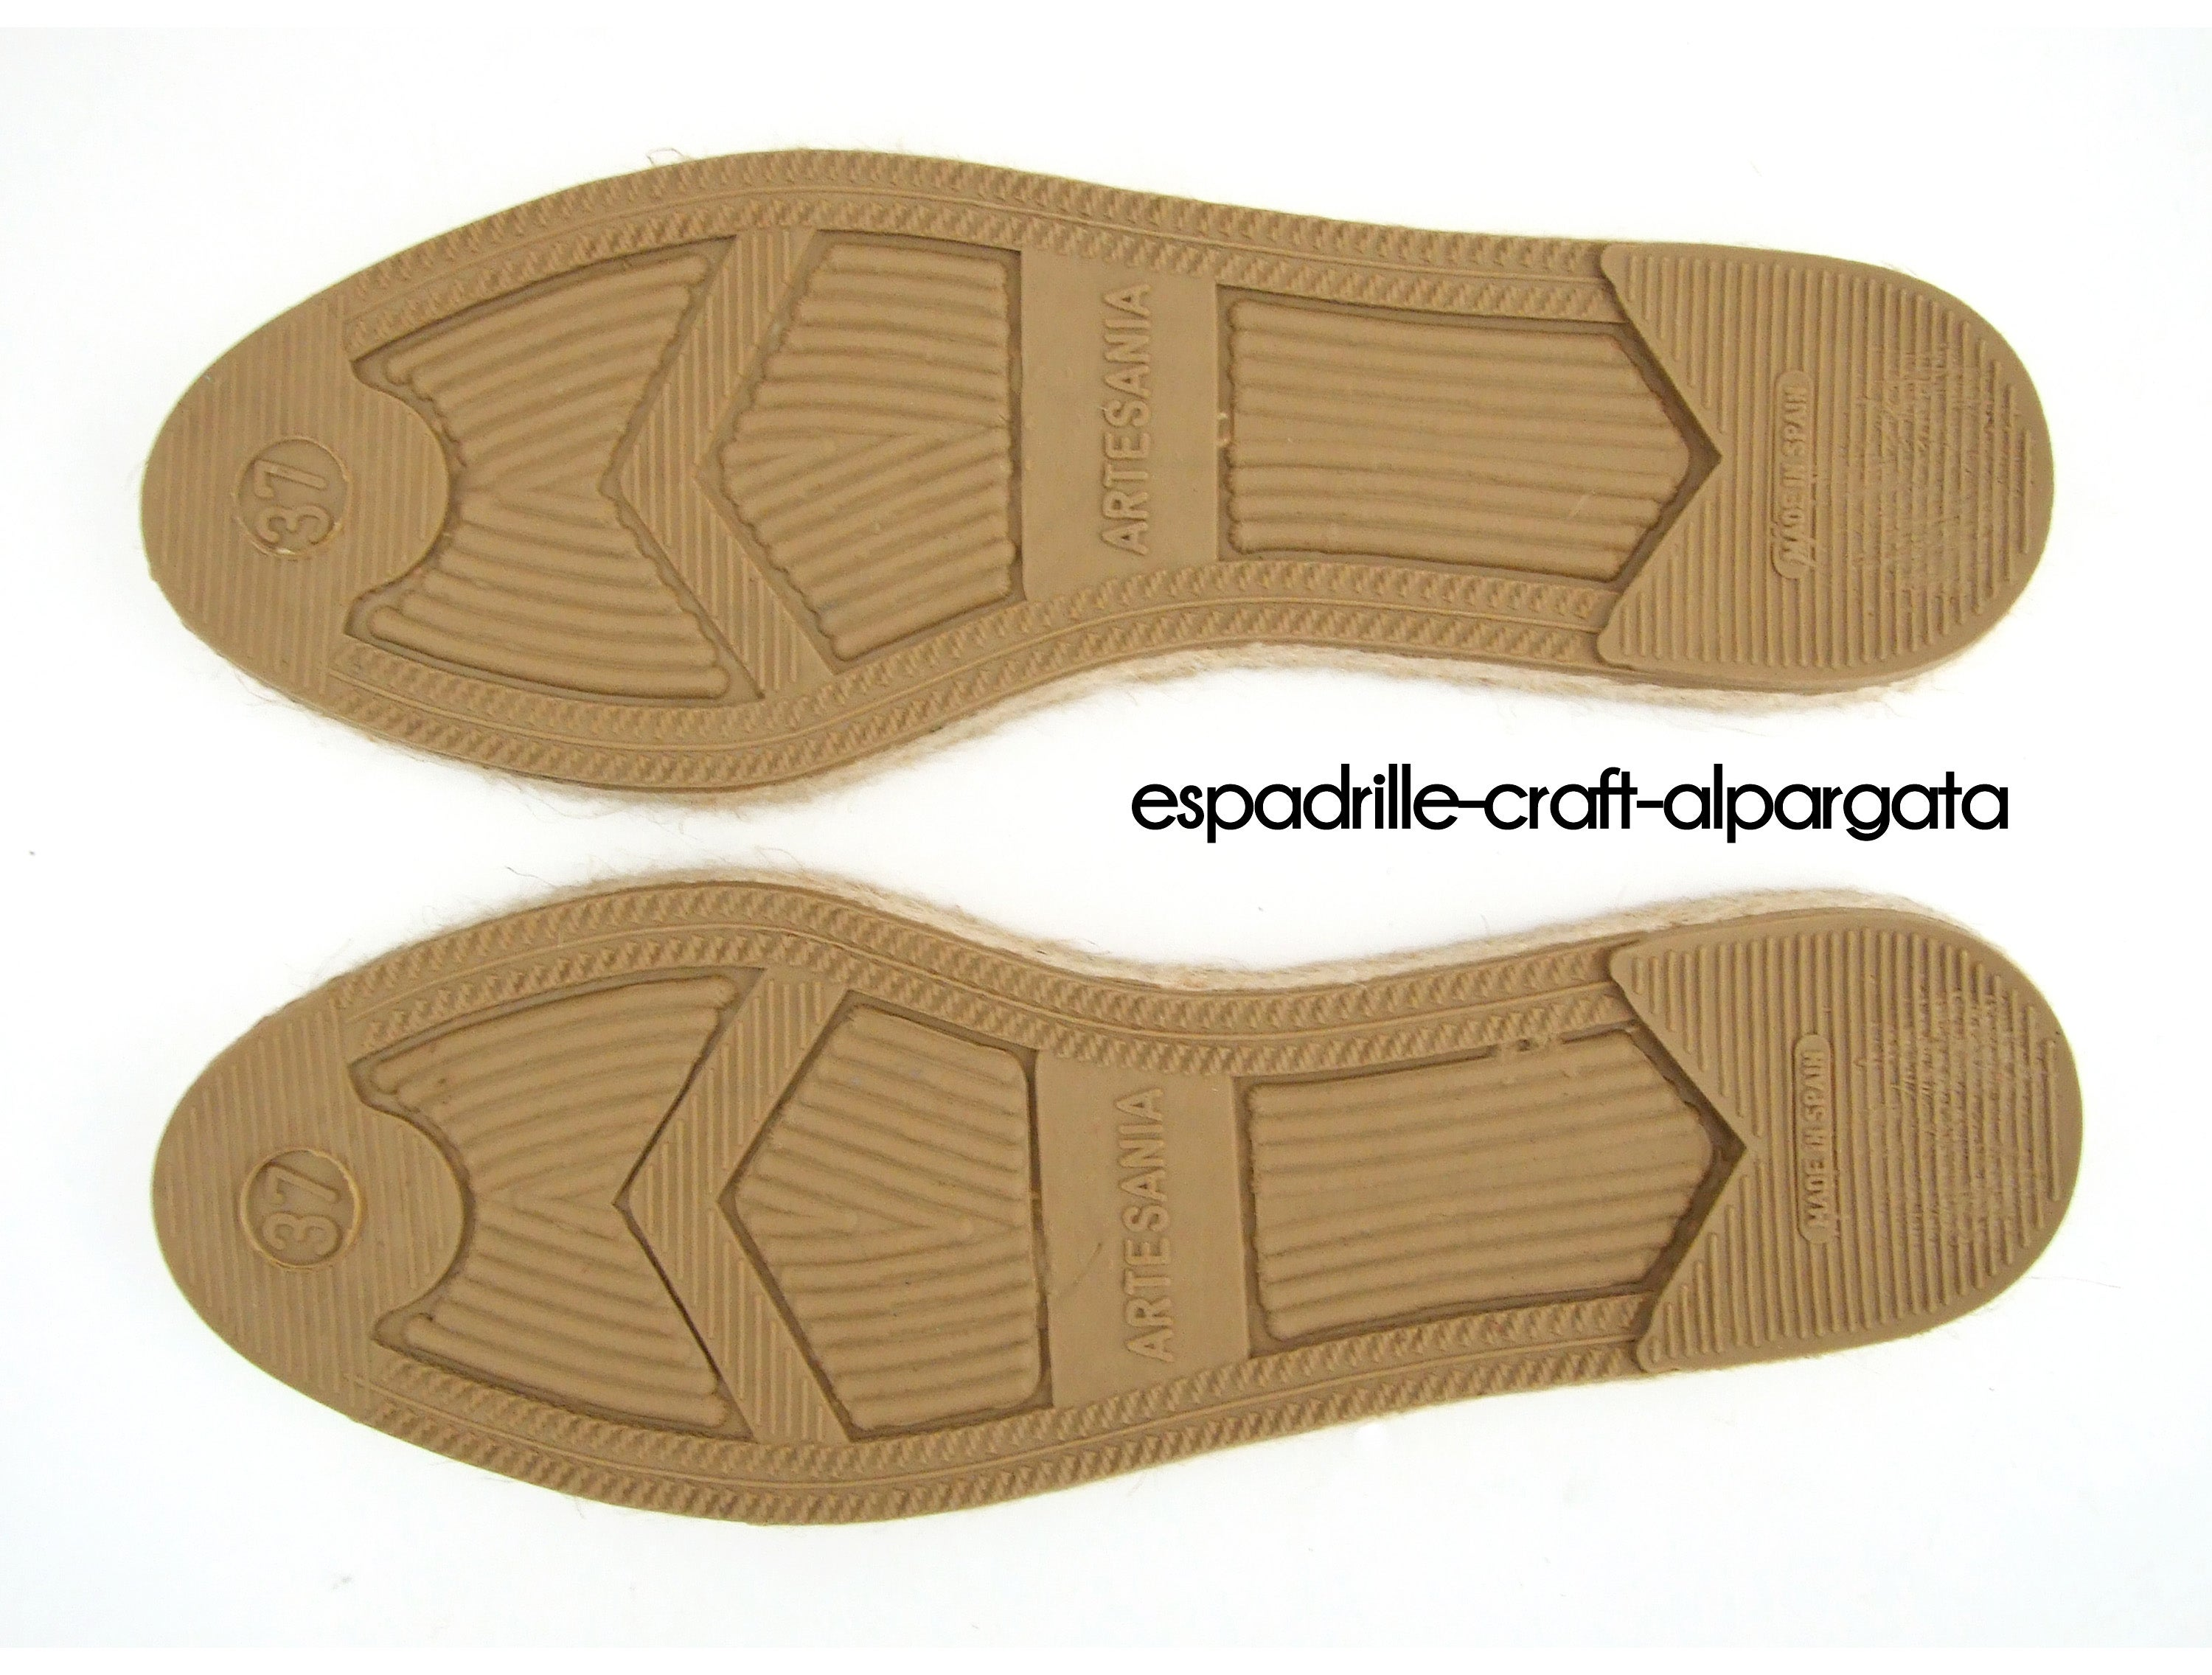 how to make espadrille soles